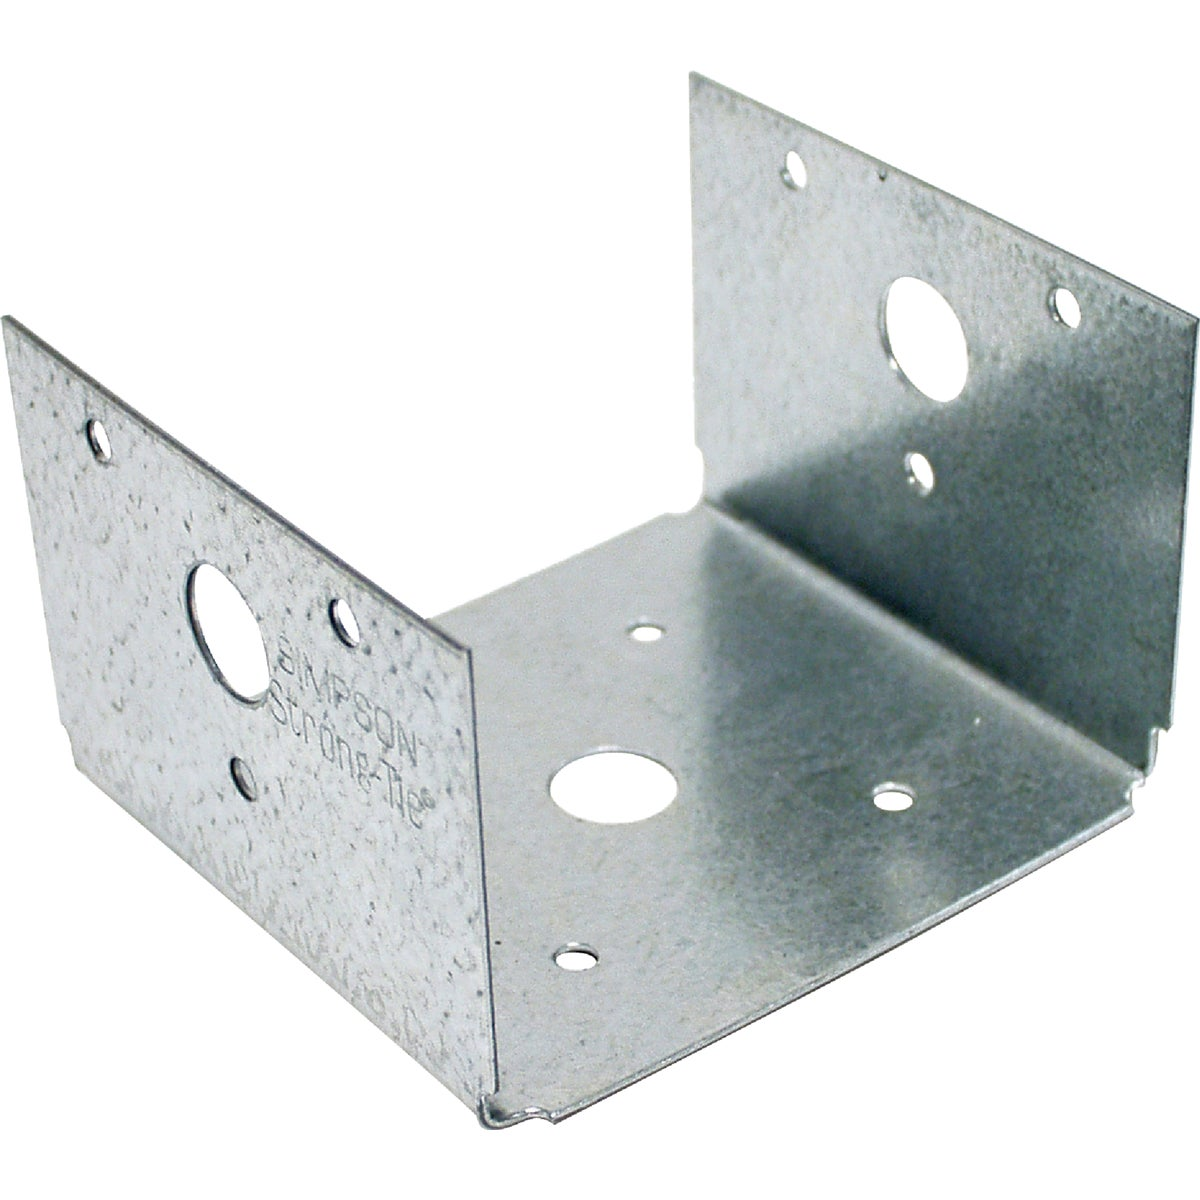 4X4 HALF BASE - BC40 by Simpson Strong Tie